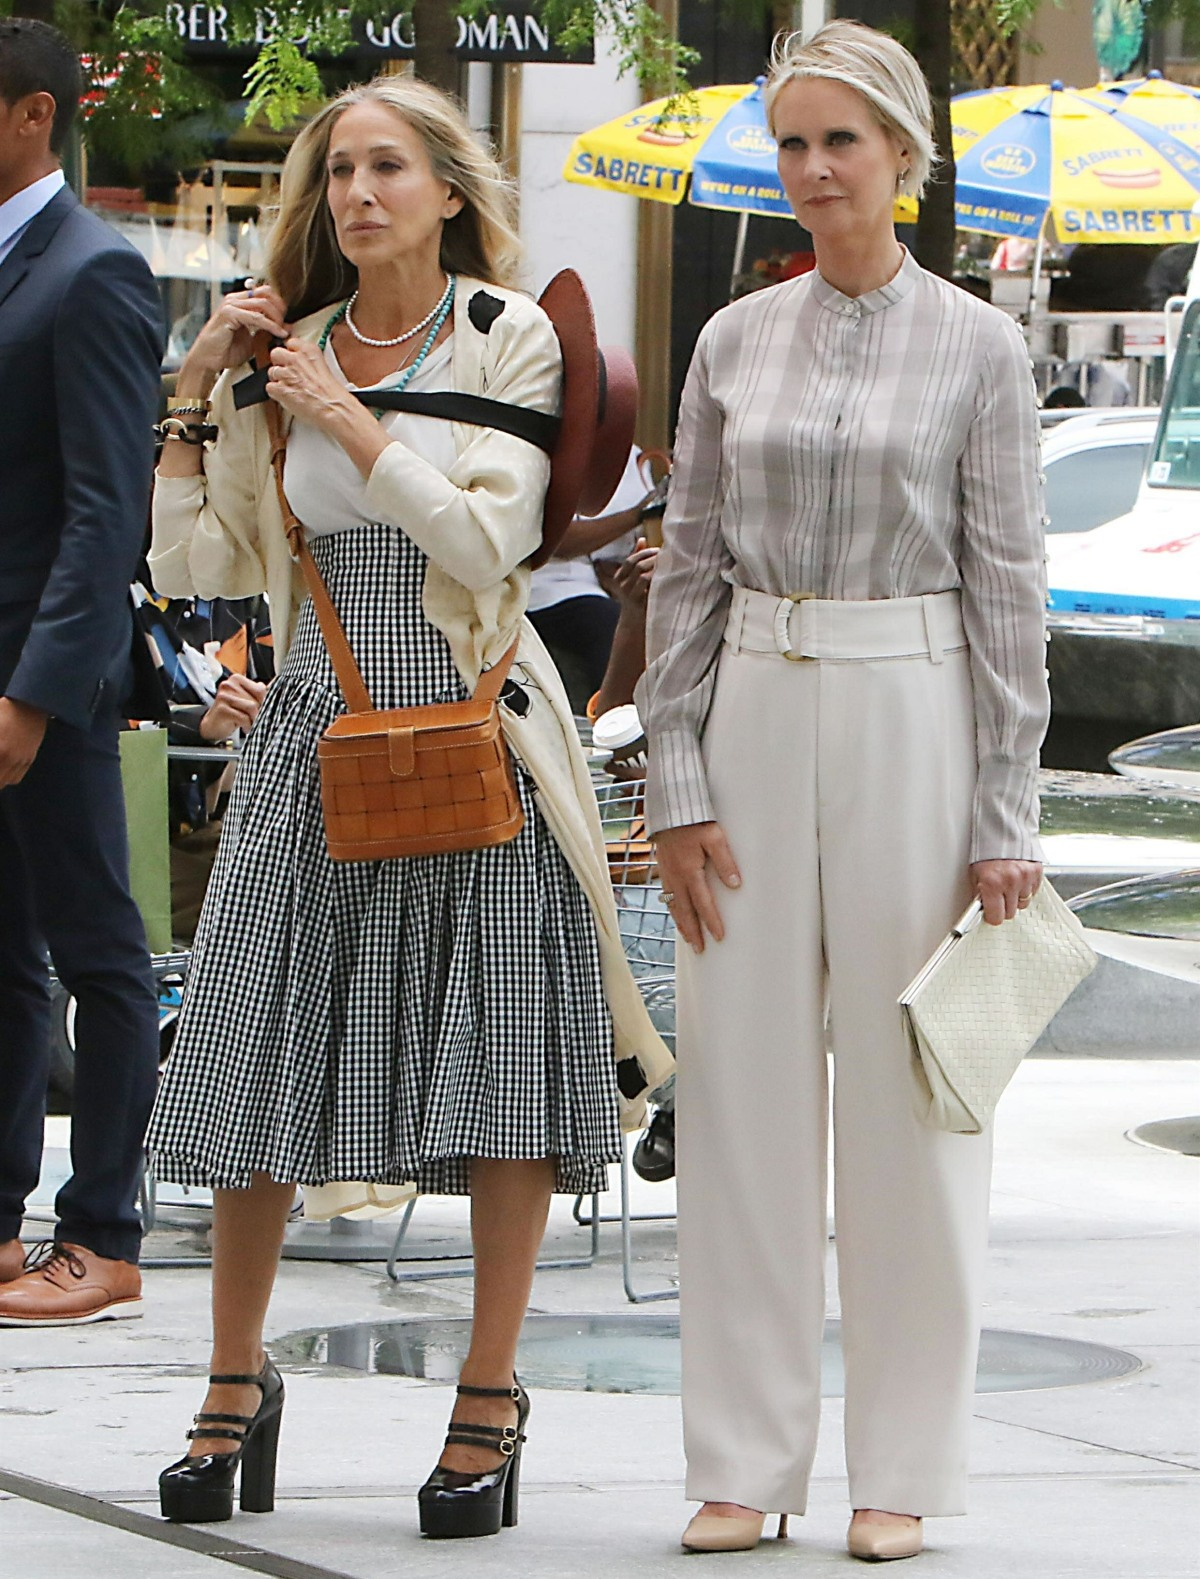 Sarah Jessica Parker and Cynthia Nixon  Filming 'And Just Like That'